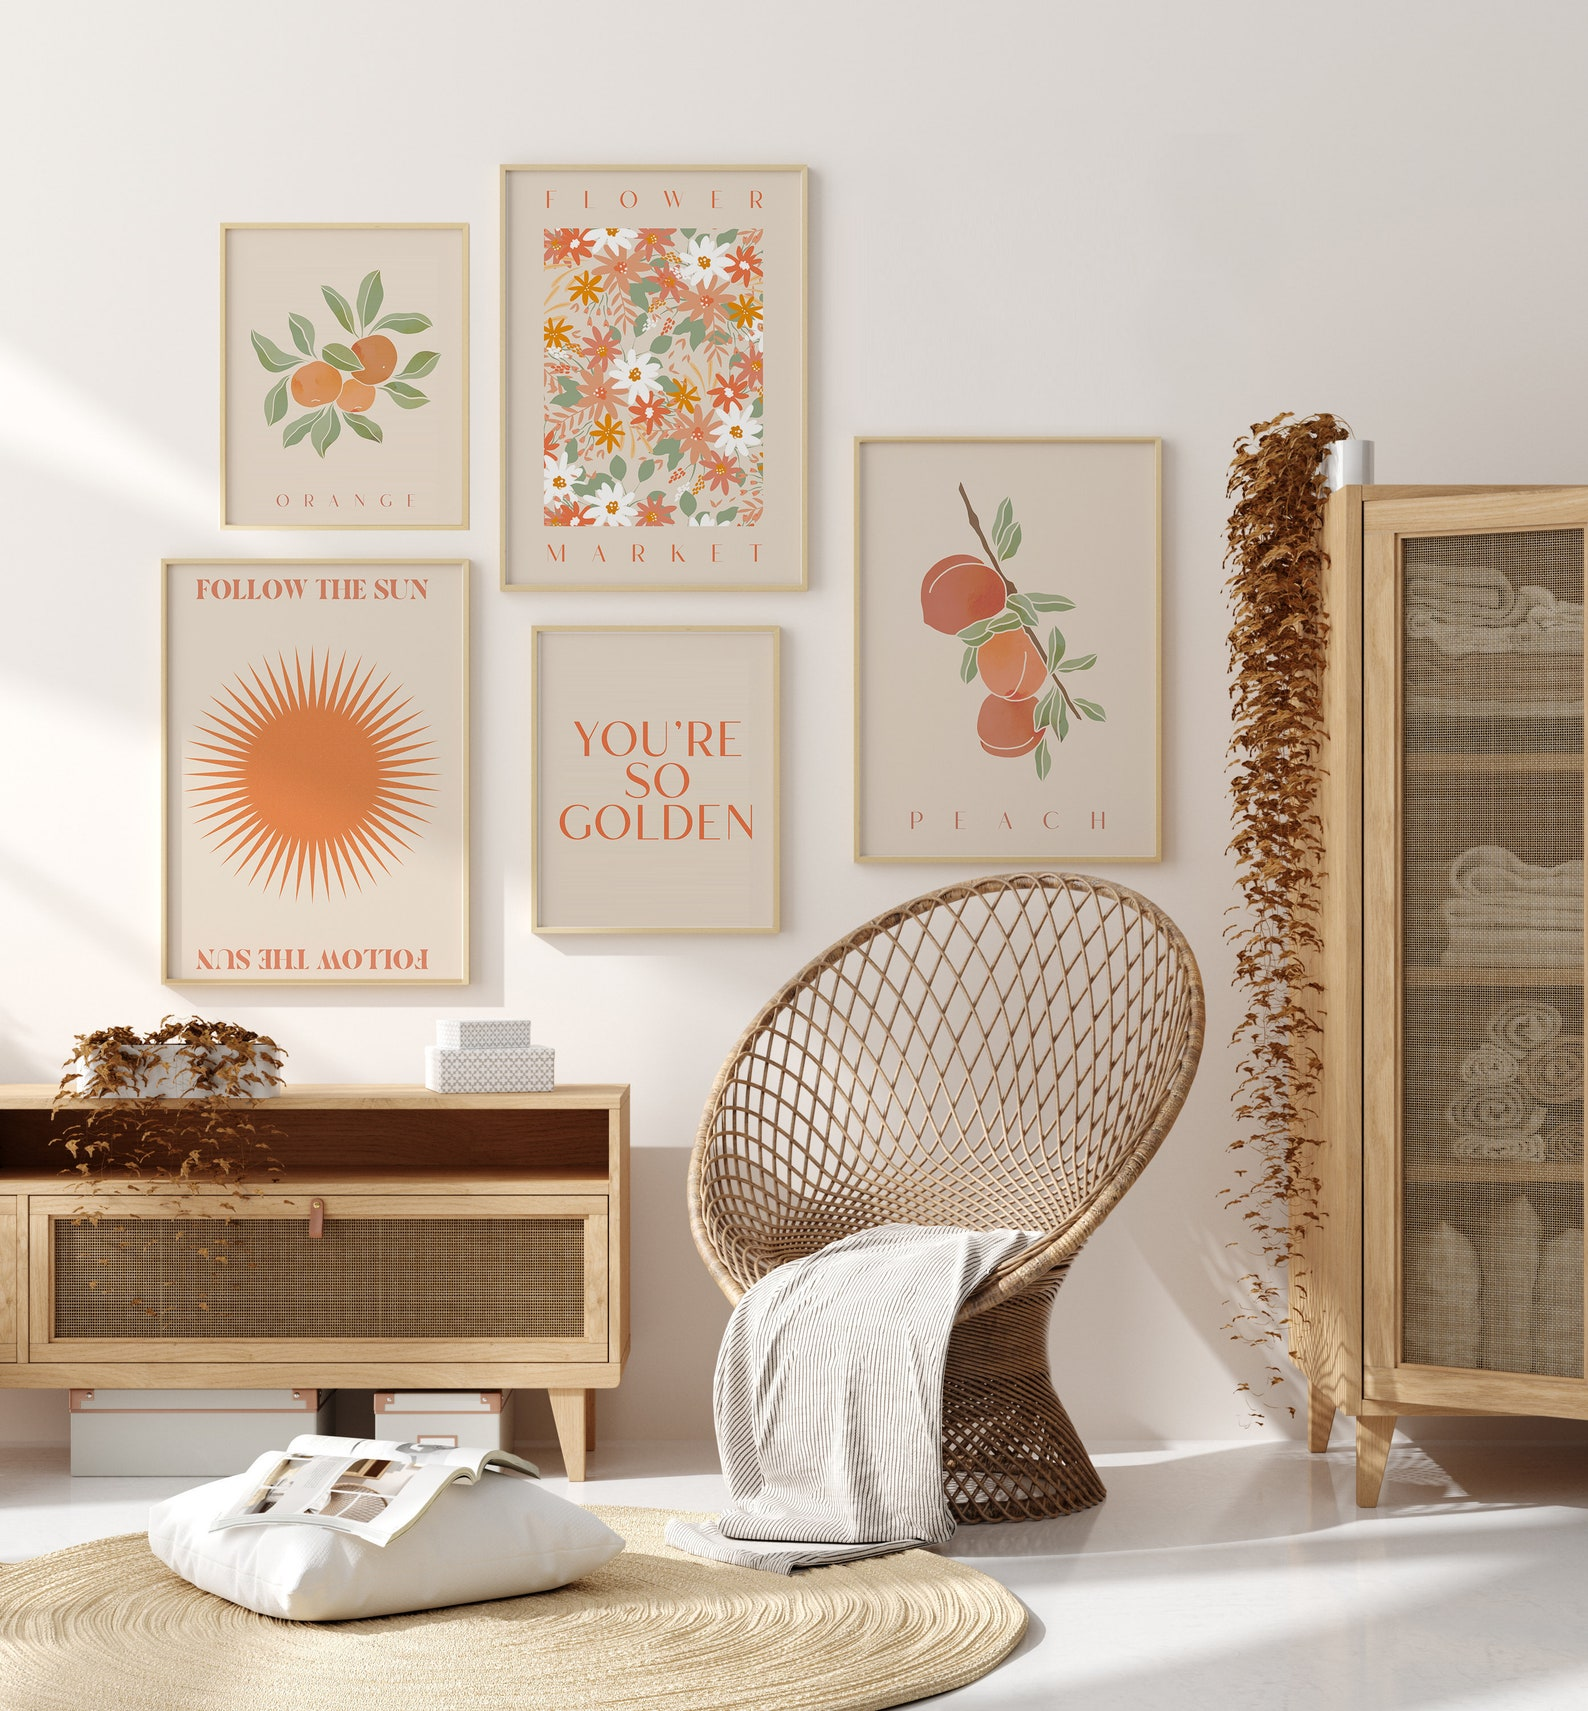 A selection of prints and gift ideas available at Peach and Home